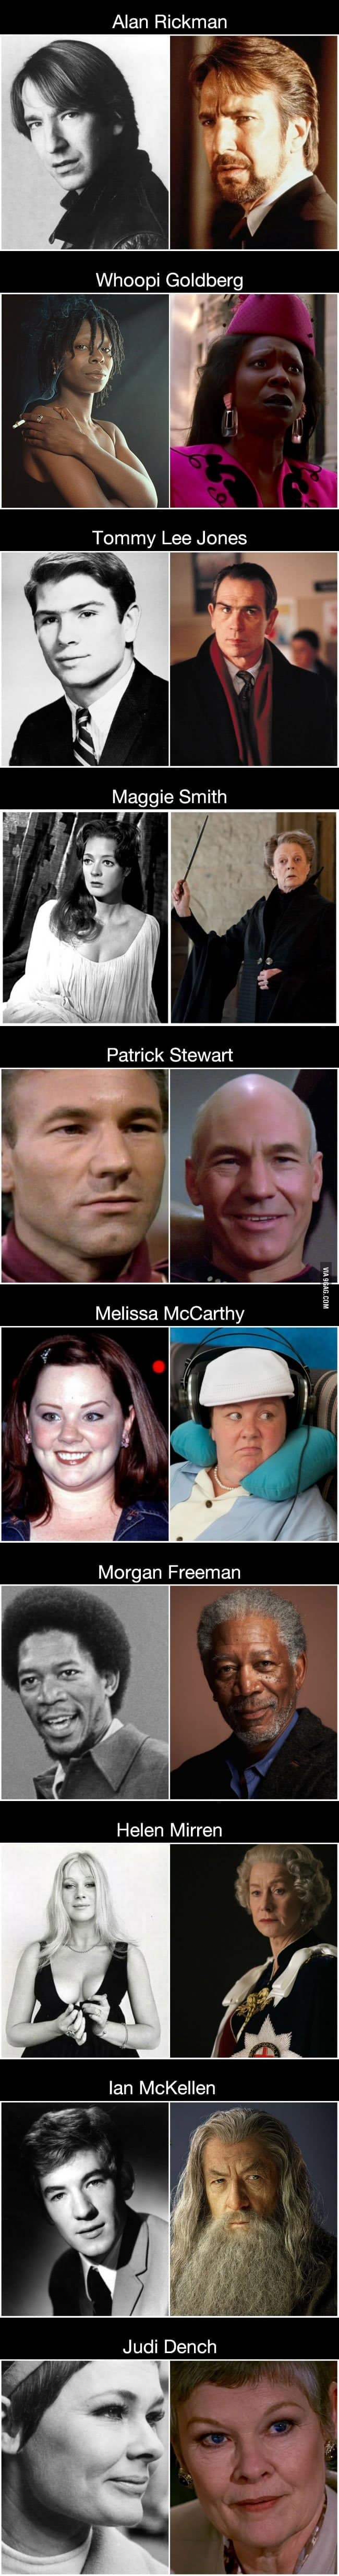 actors-then-and-now